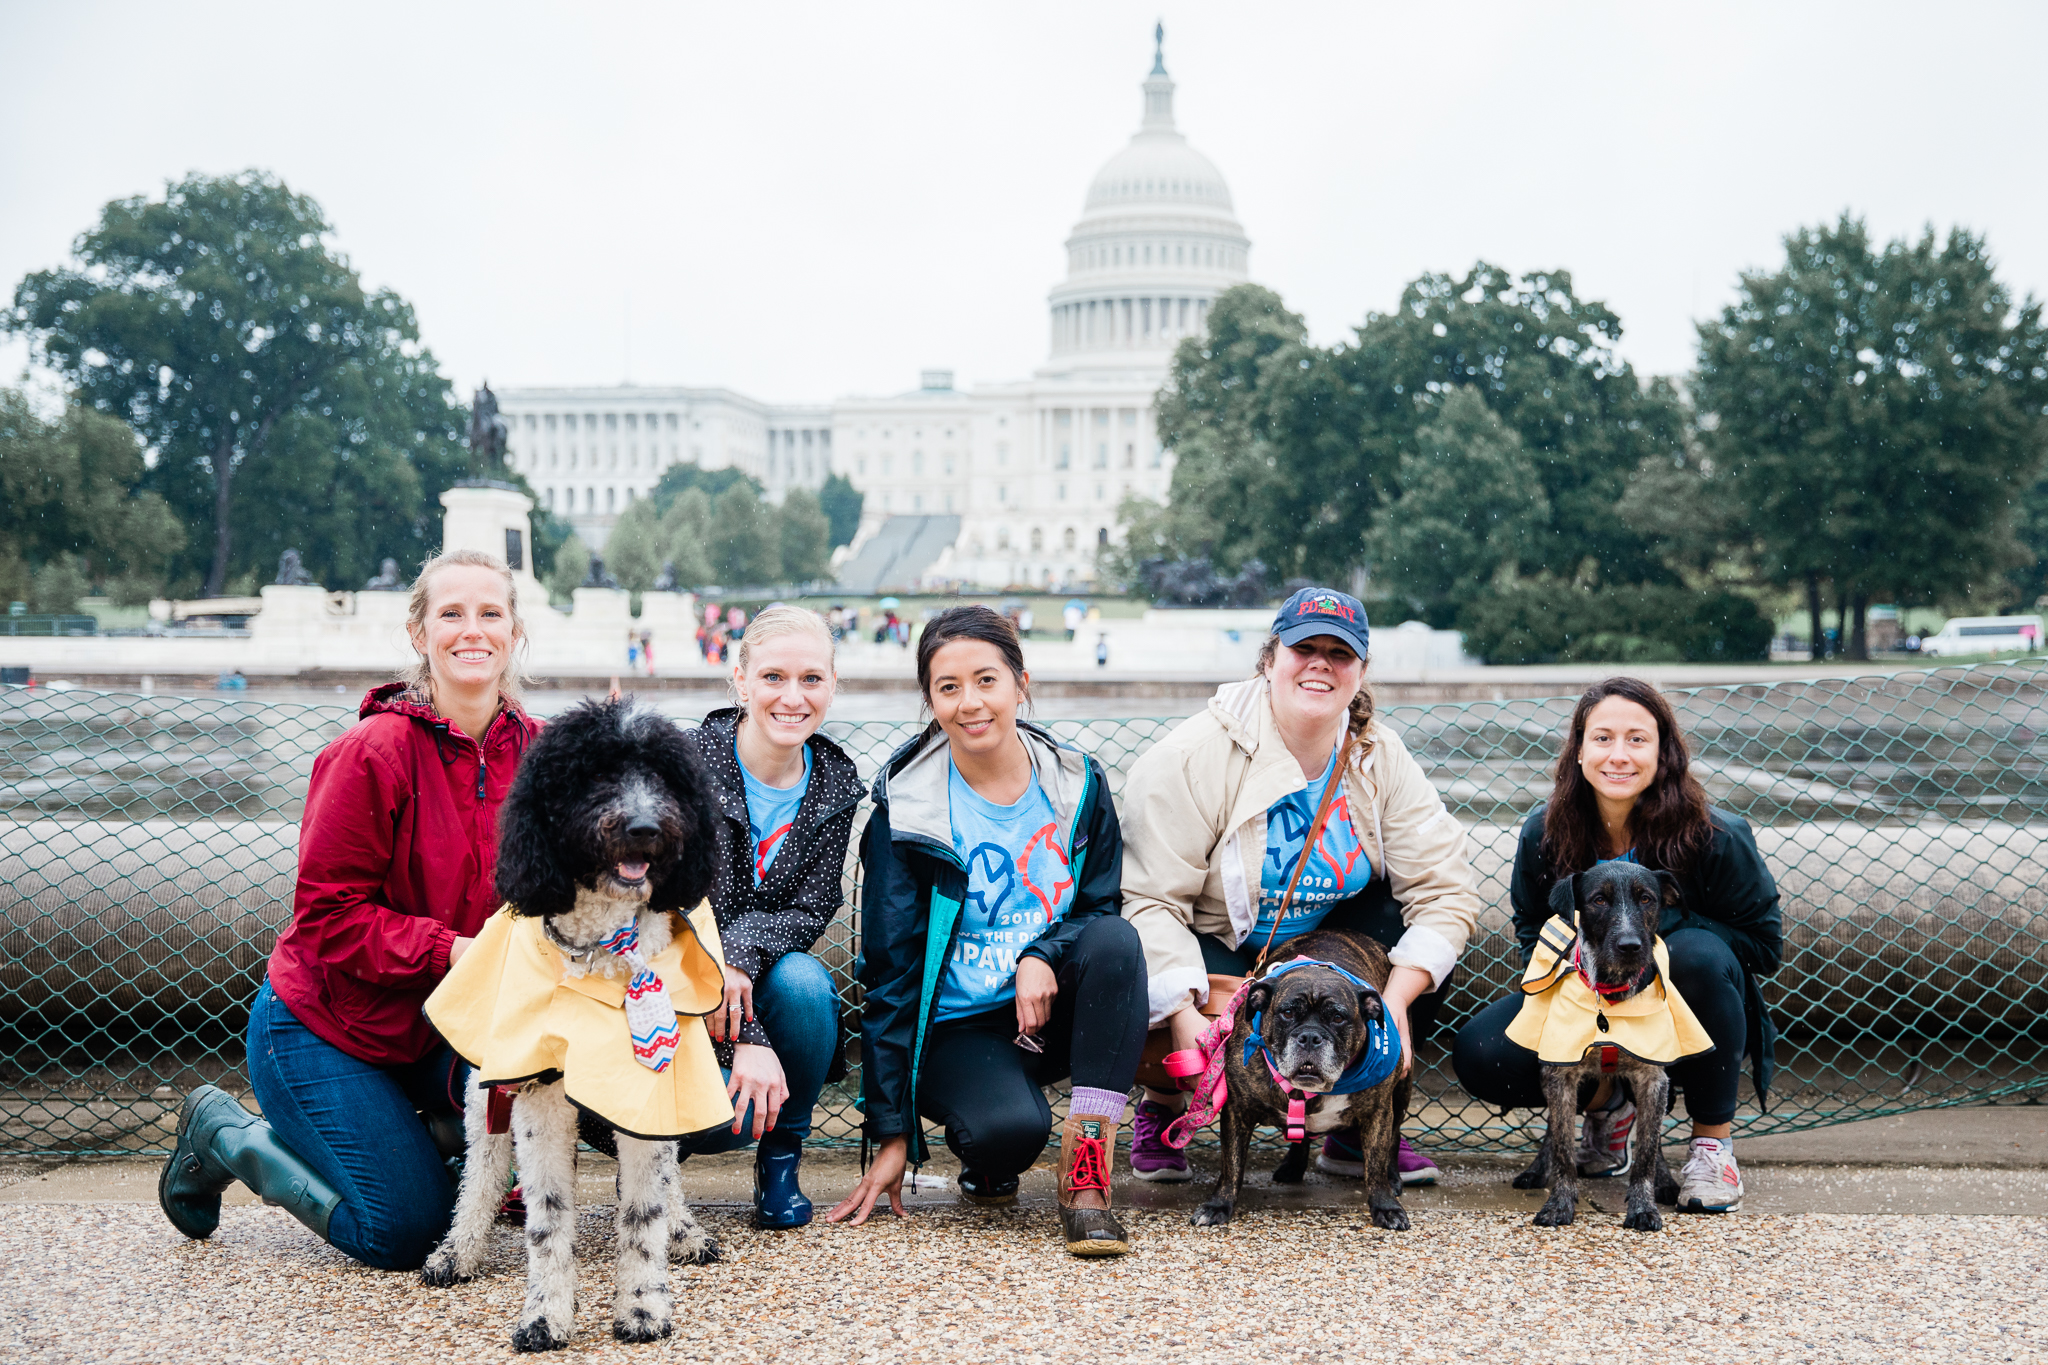 "Despite the never-ending rain, the second annual Bipawtisan March brought dogs from both sides of the aisle together to march from Capitol Hill to 'yappy hour' at Wunder Garten for beer and pup-friendly treats. The event, organized by a female-run non-profit WeTheDogsDC, had approximately 100 participants and raised $10,000 for more than 30 rescue organizations around town. According to the organizers, ""the mission of the Bipawtisan March is to show that no matter what side of the aisle you stand on, the love we have for our pets transcends all political agendas and is a cause that we can all support."" Attendees were encouraged to don costumes showing what they were marching for and to carry family-friendly signs. 100 percent of the event proceeds were donated to rescue organizations.(Image: Aaron Wong Photography)"